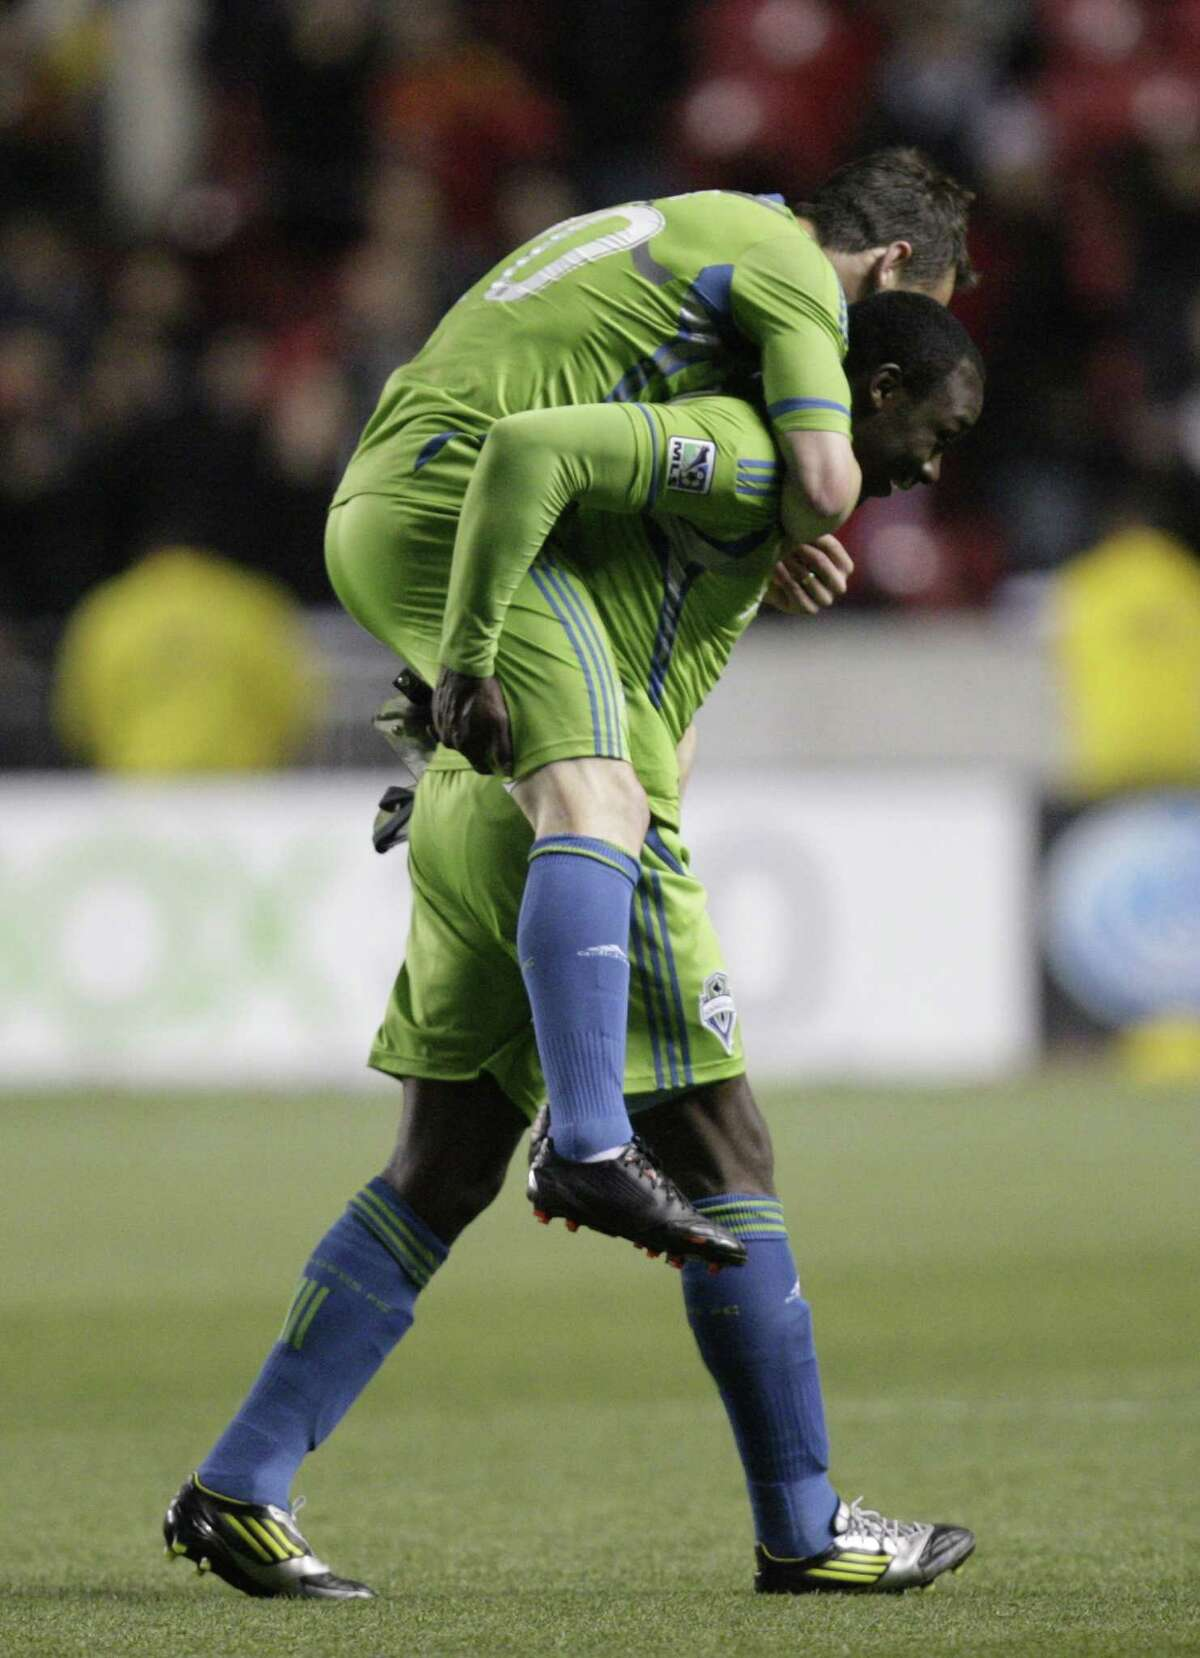 Seattle Sounders defender Zach Scott rides the back of teammate Seattle Sounders defender Jhon Kennedy Hurtado (34) following their MLS Western Conference semifinal soccer match with Real Salt Lake Thursday, Nov. 8, 2012, in Sandy, Utah. The Sounders defeated Real Salt Lake. The match, the second of a two-match aggregate game, ended with a score of 1-0.